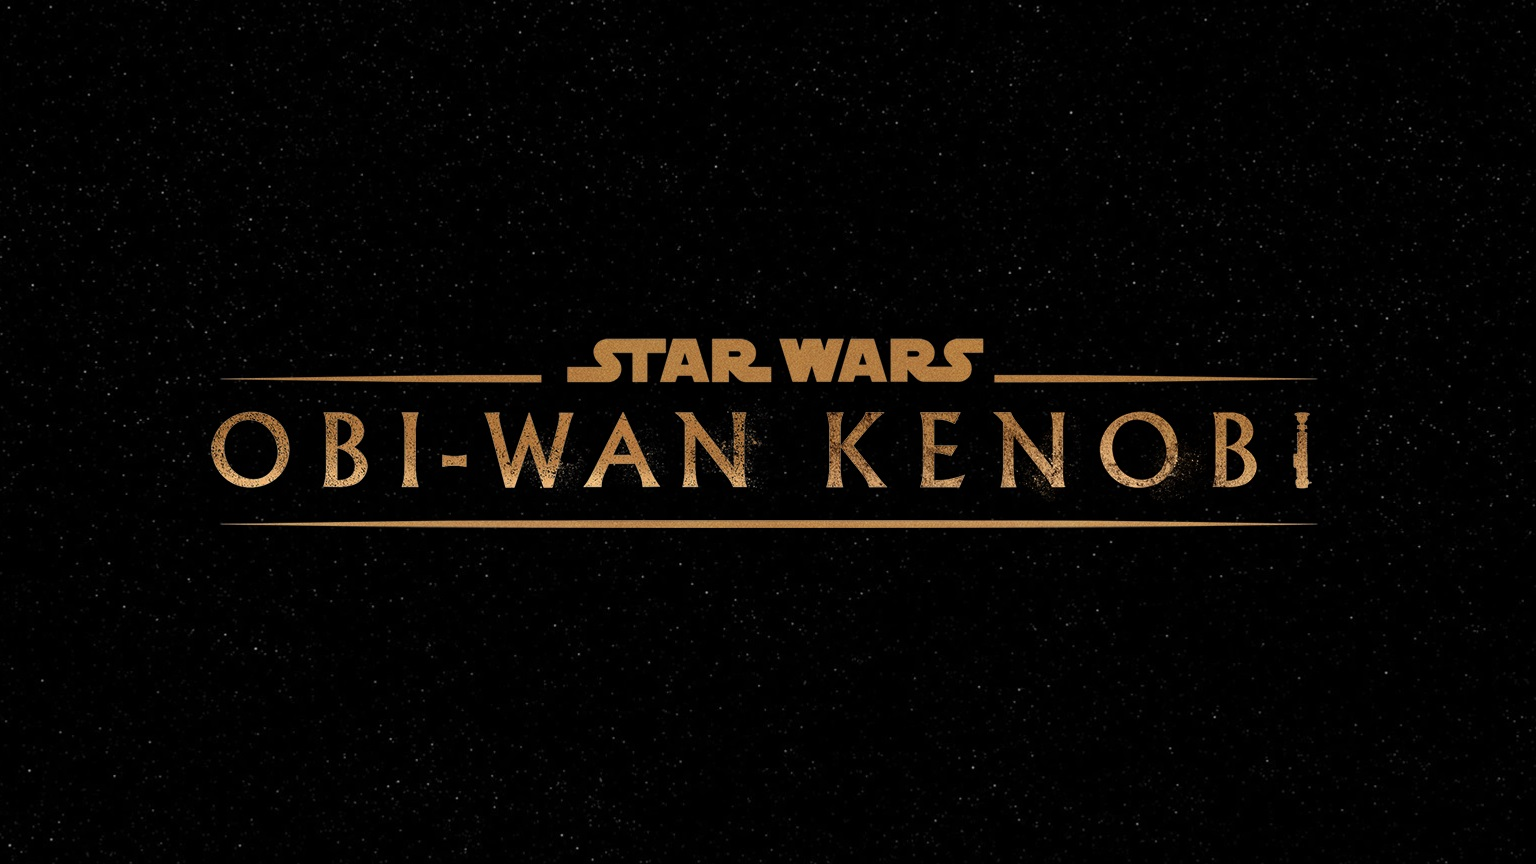 'Obi-Wan Kenobi' is about to start filming – here's the full cast